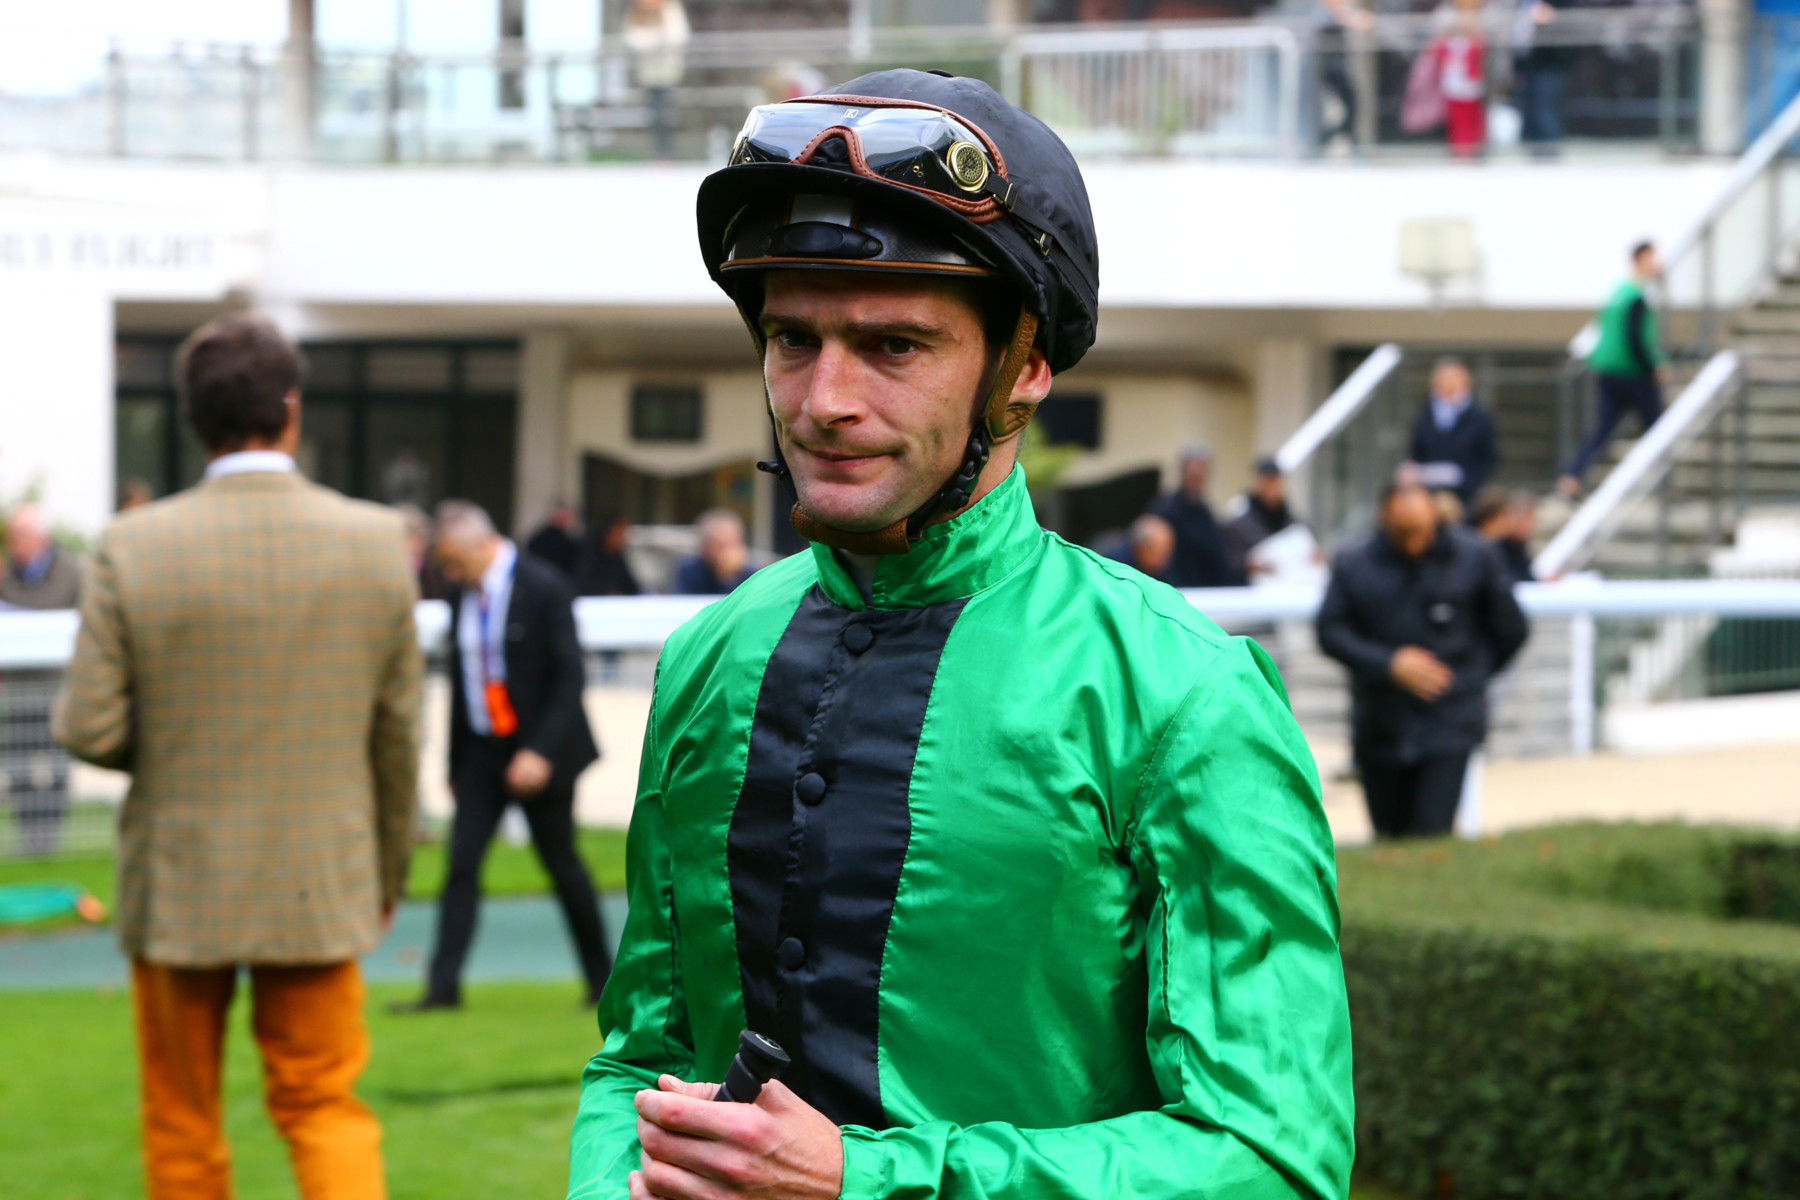 La Commission d'appel de France Galop confirme la suspension de Jonathan Plouganou